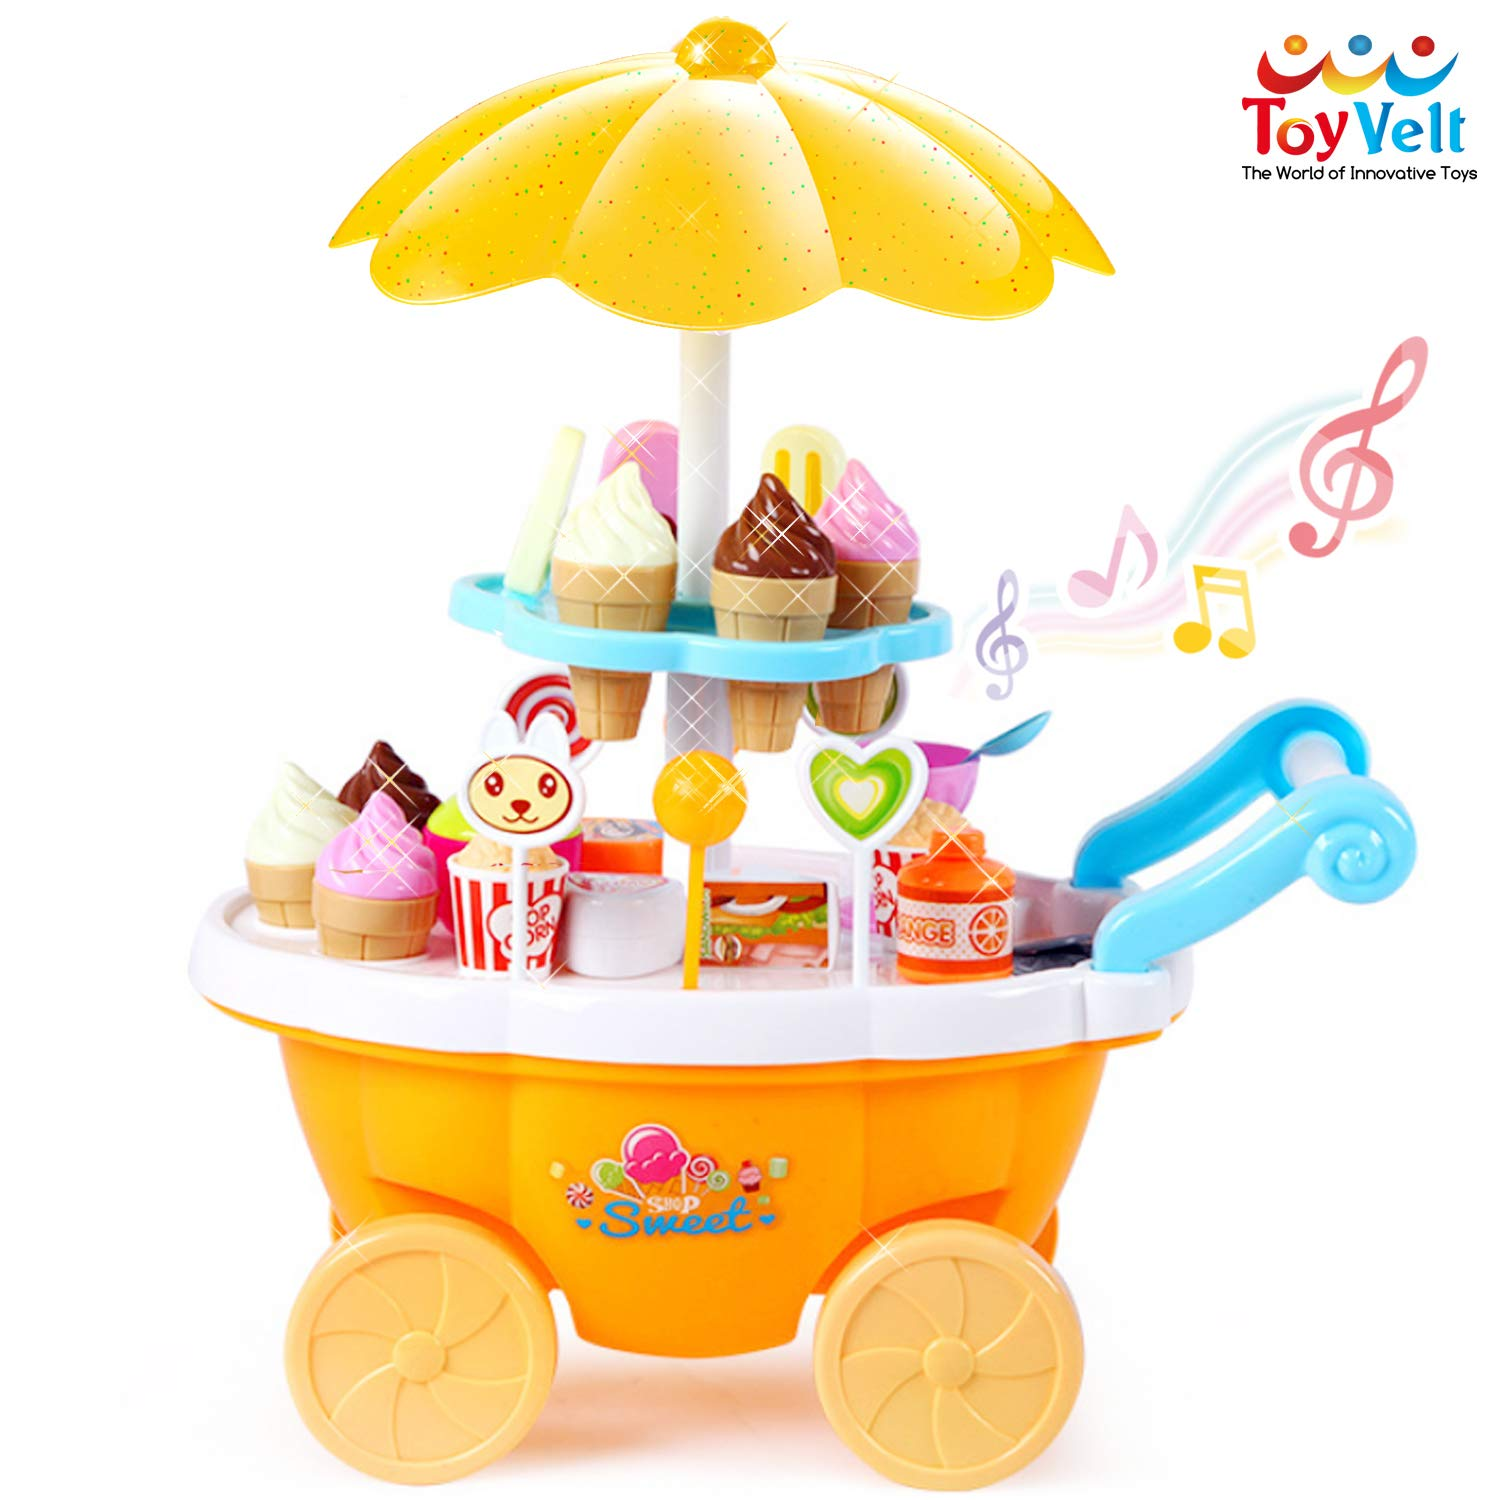 ToyVelt Ice Cream Toy Cart Play Set for Kids - 59-Piece Pretend Play Food - Educational Ice-Cream Trolley Truck with with Music & Lighting - Great Gift for Girls and Boys Ages 2 - 12 Years Old by ToyVelt